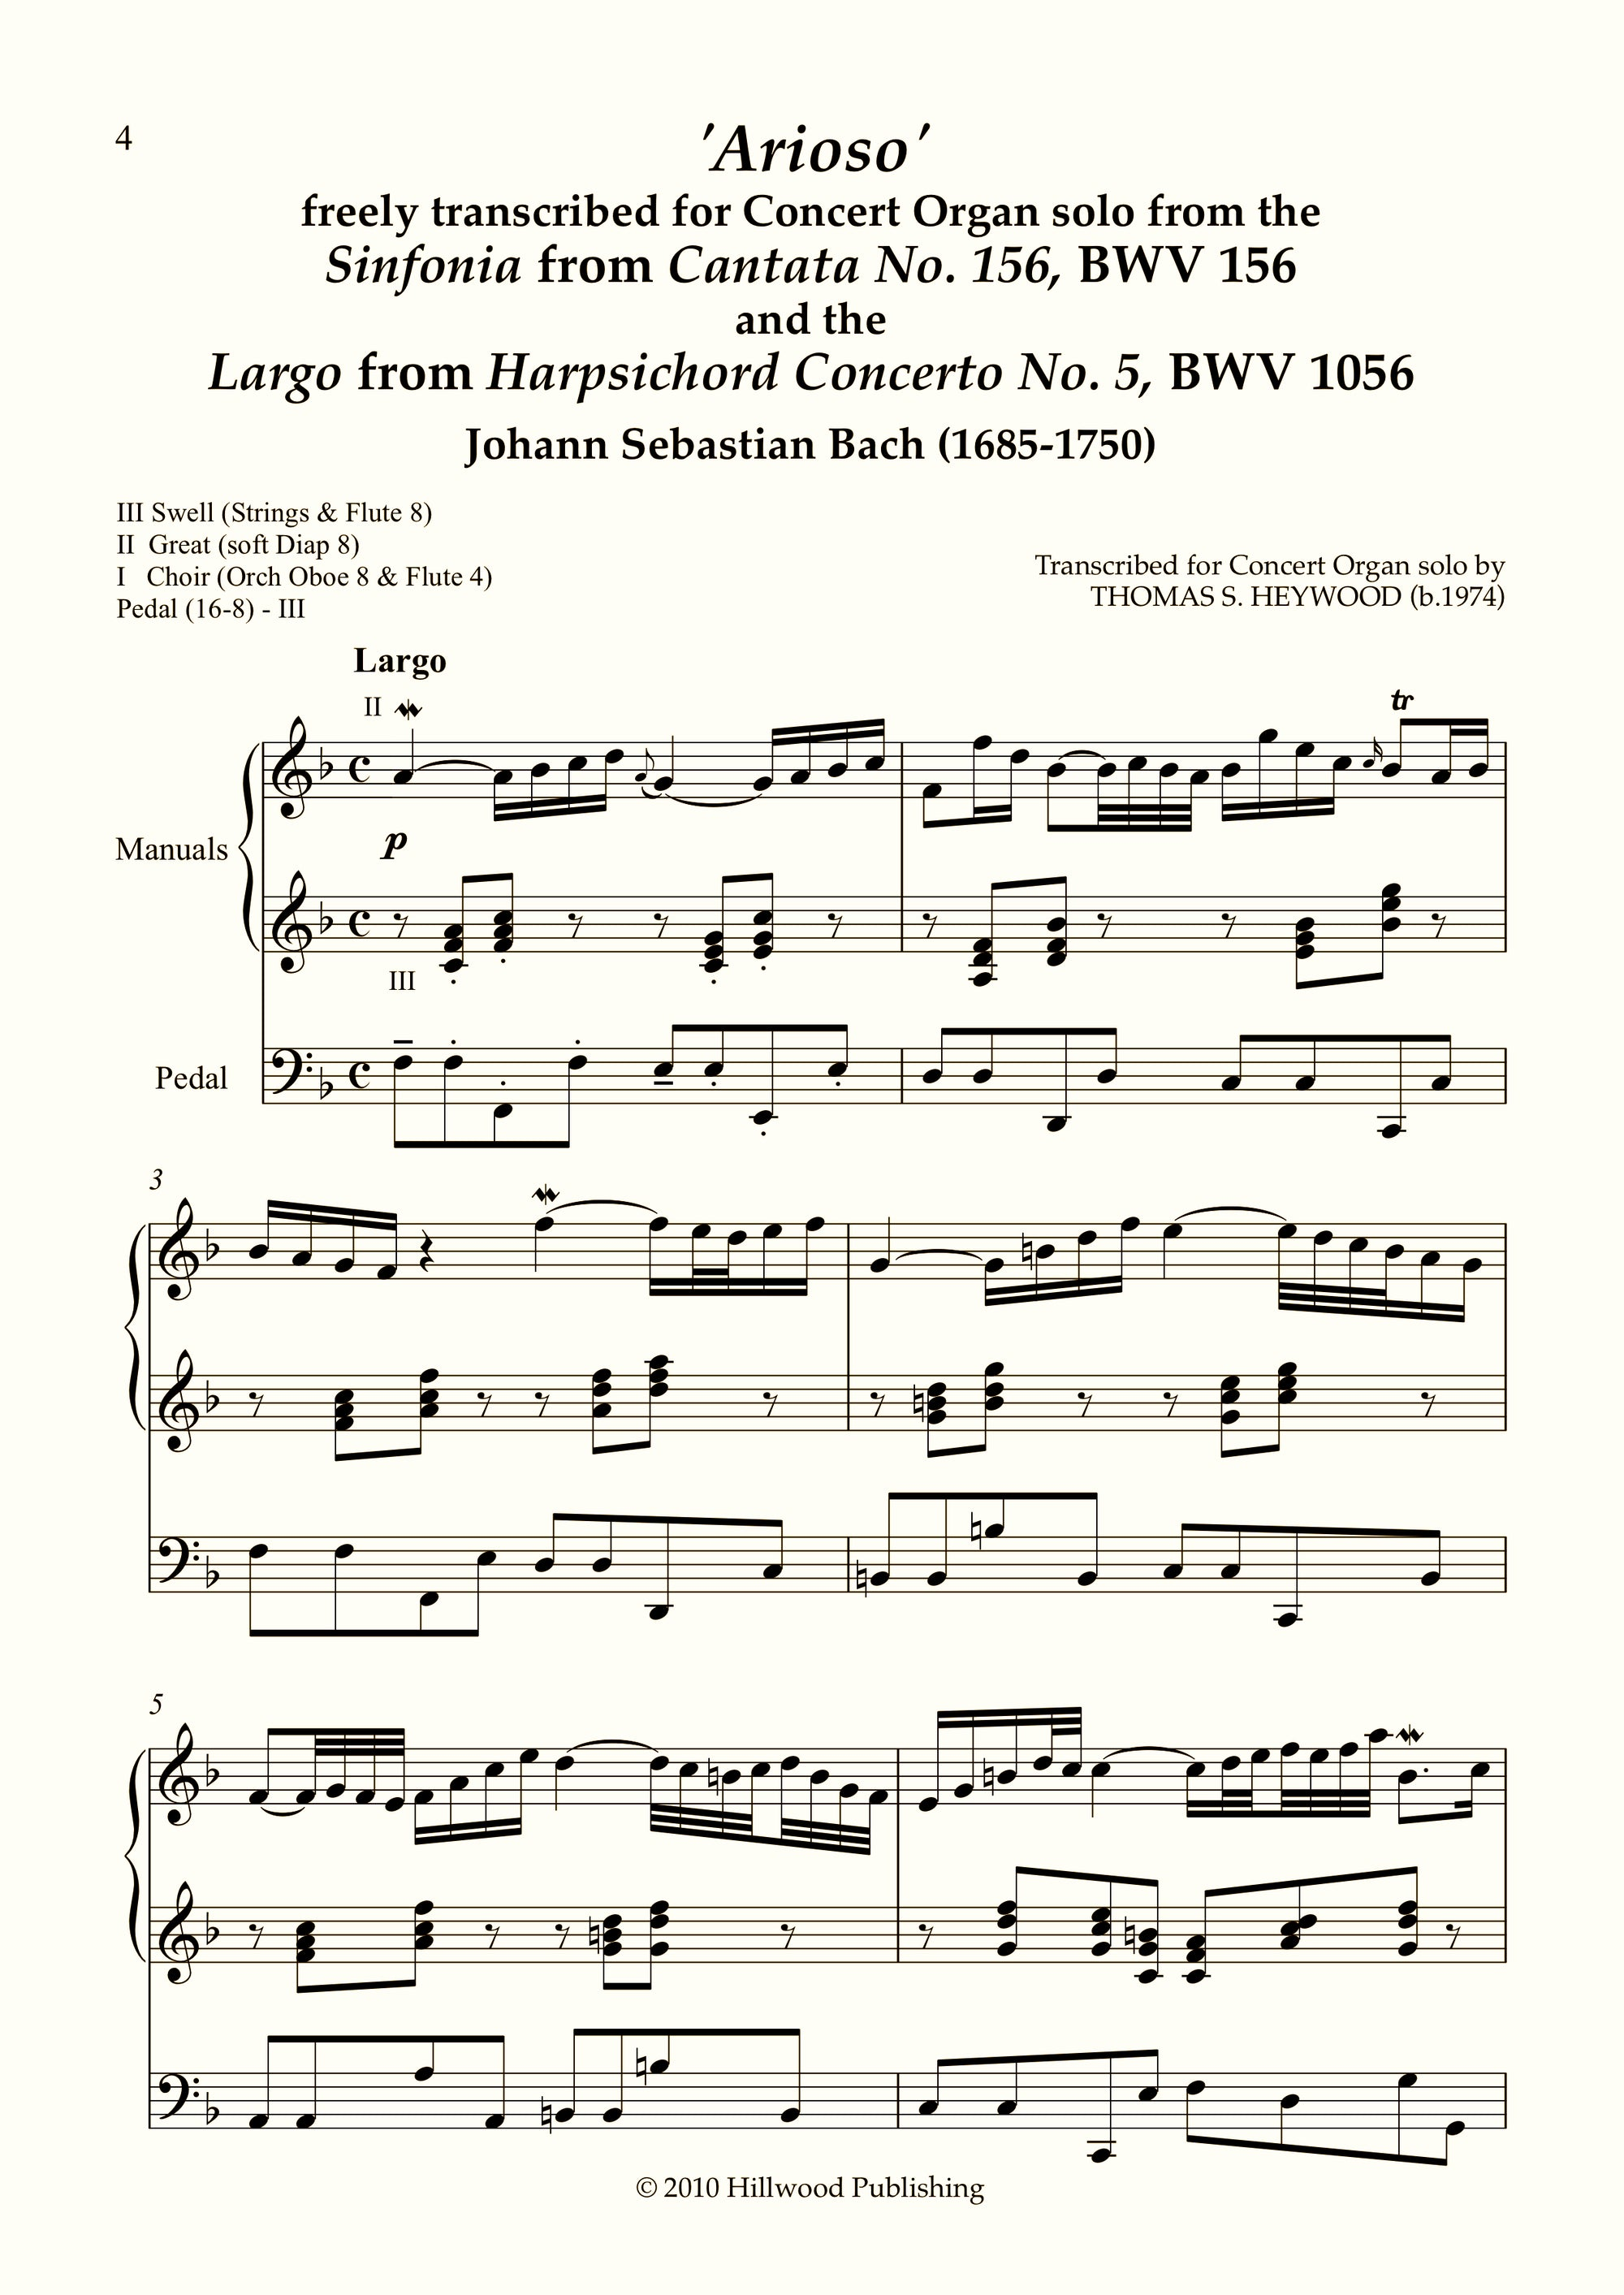 Bach/Heywood - 'Arioso': Sinfonia from Cantata No. 156, BWV 156 (Score) | Thomas Heywood | Concert Organ International